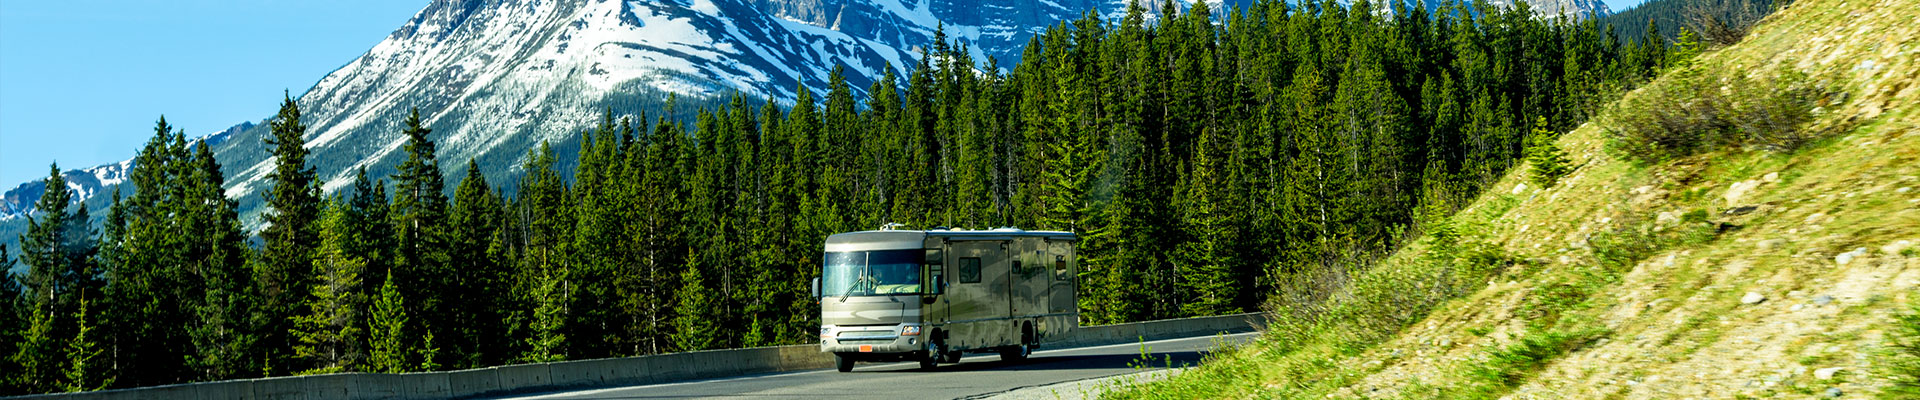 Fantasy RV Tours - FMCA Club Members